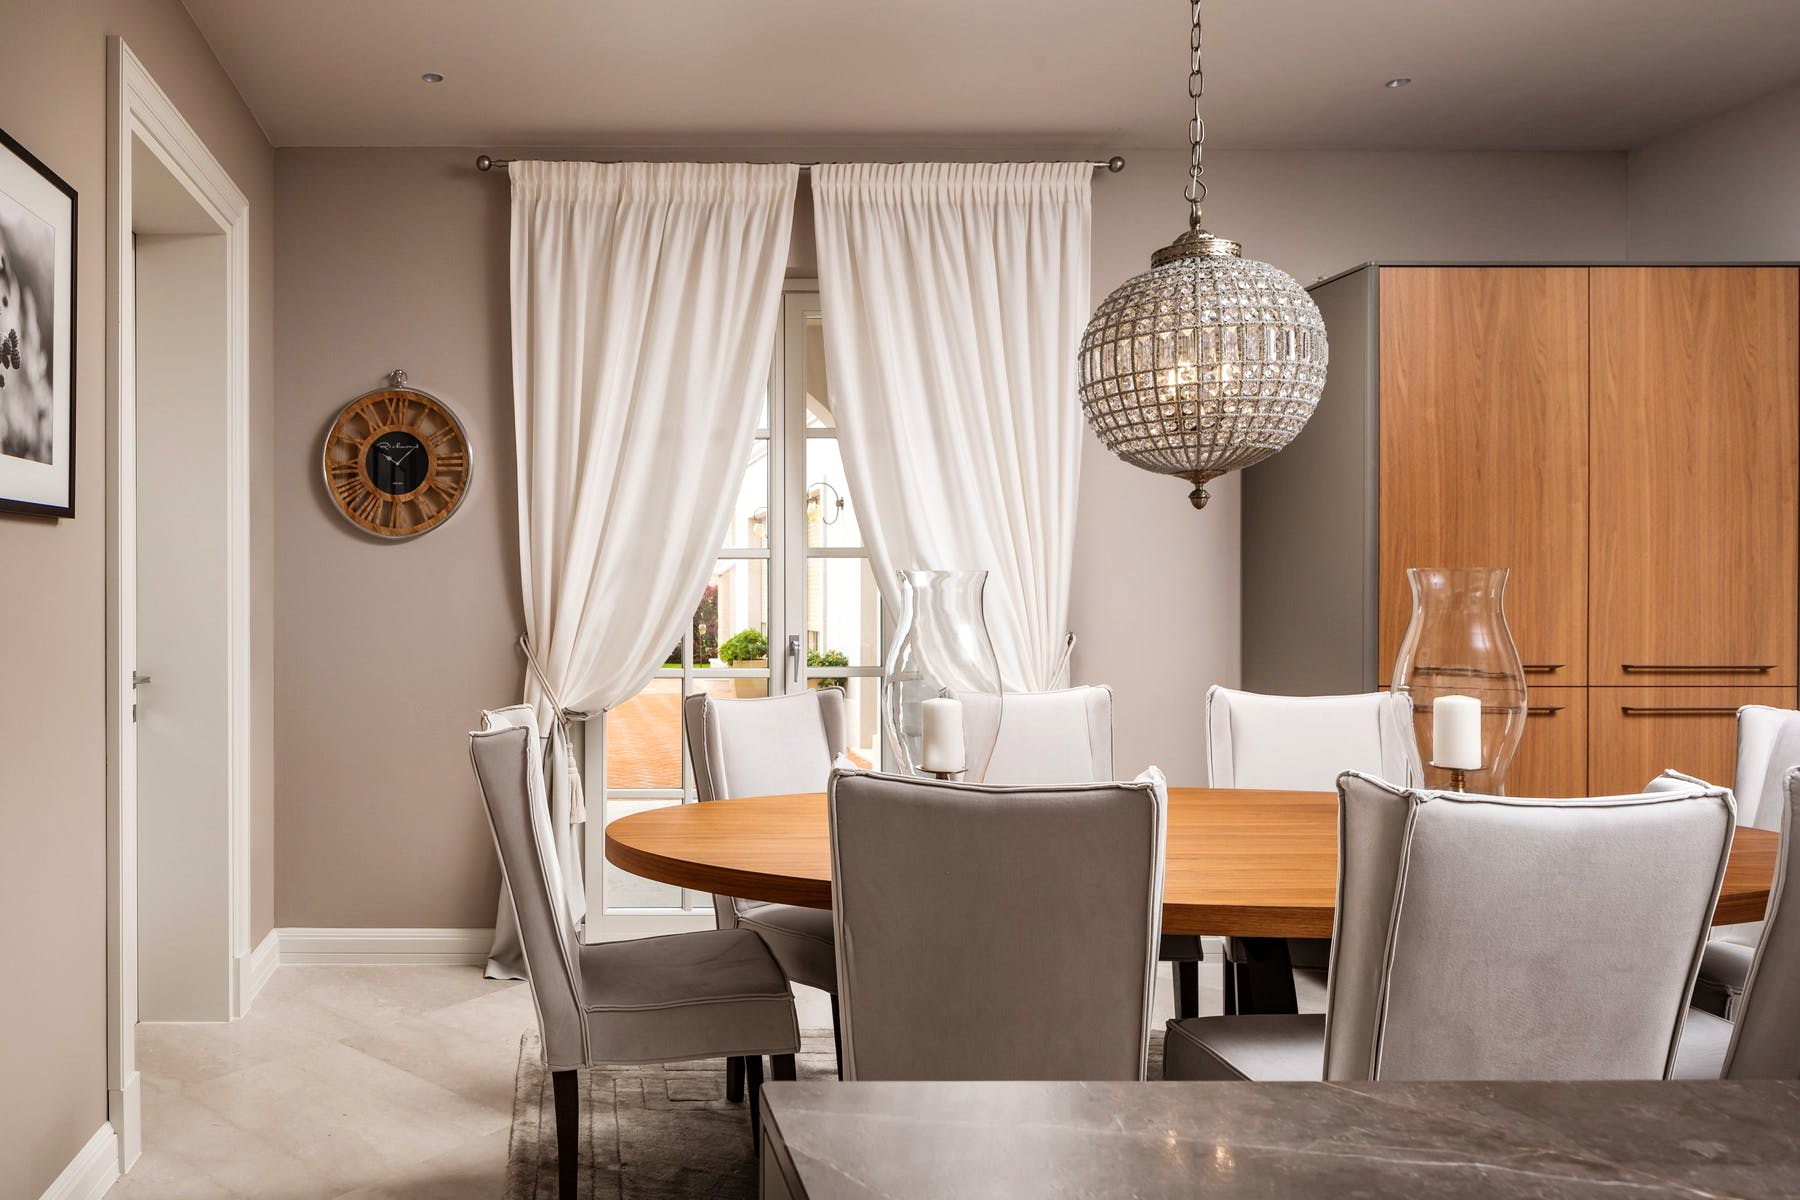 Large oval dining table near kitchen